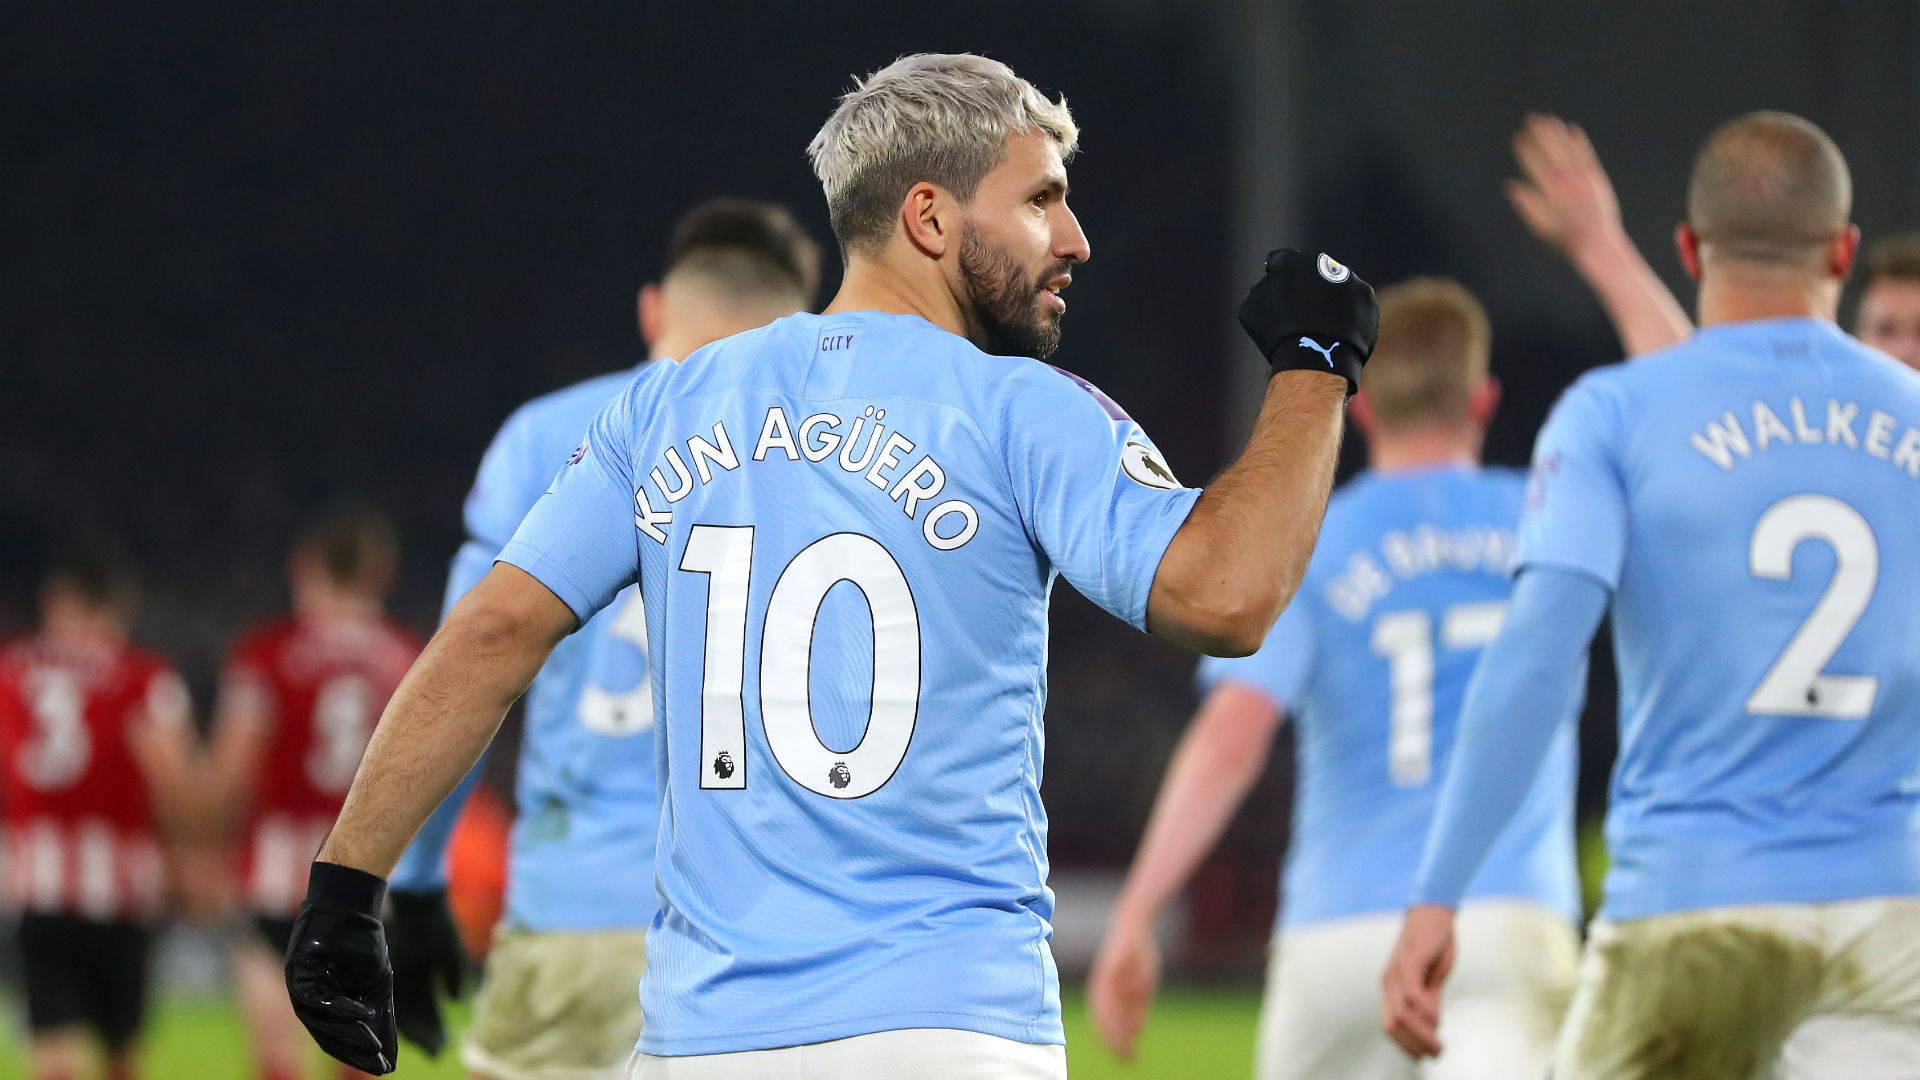 Sheffield United 0-1 Manchester City: Super-sub Aguero rescues champions after Henderson heroics